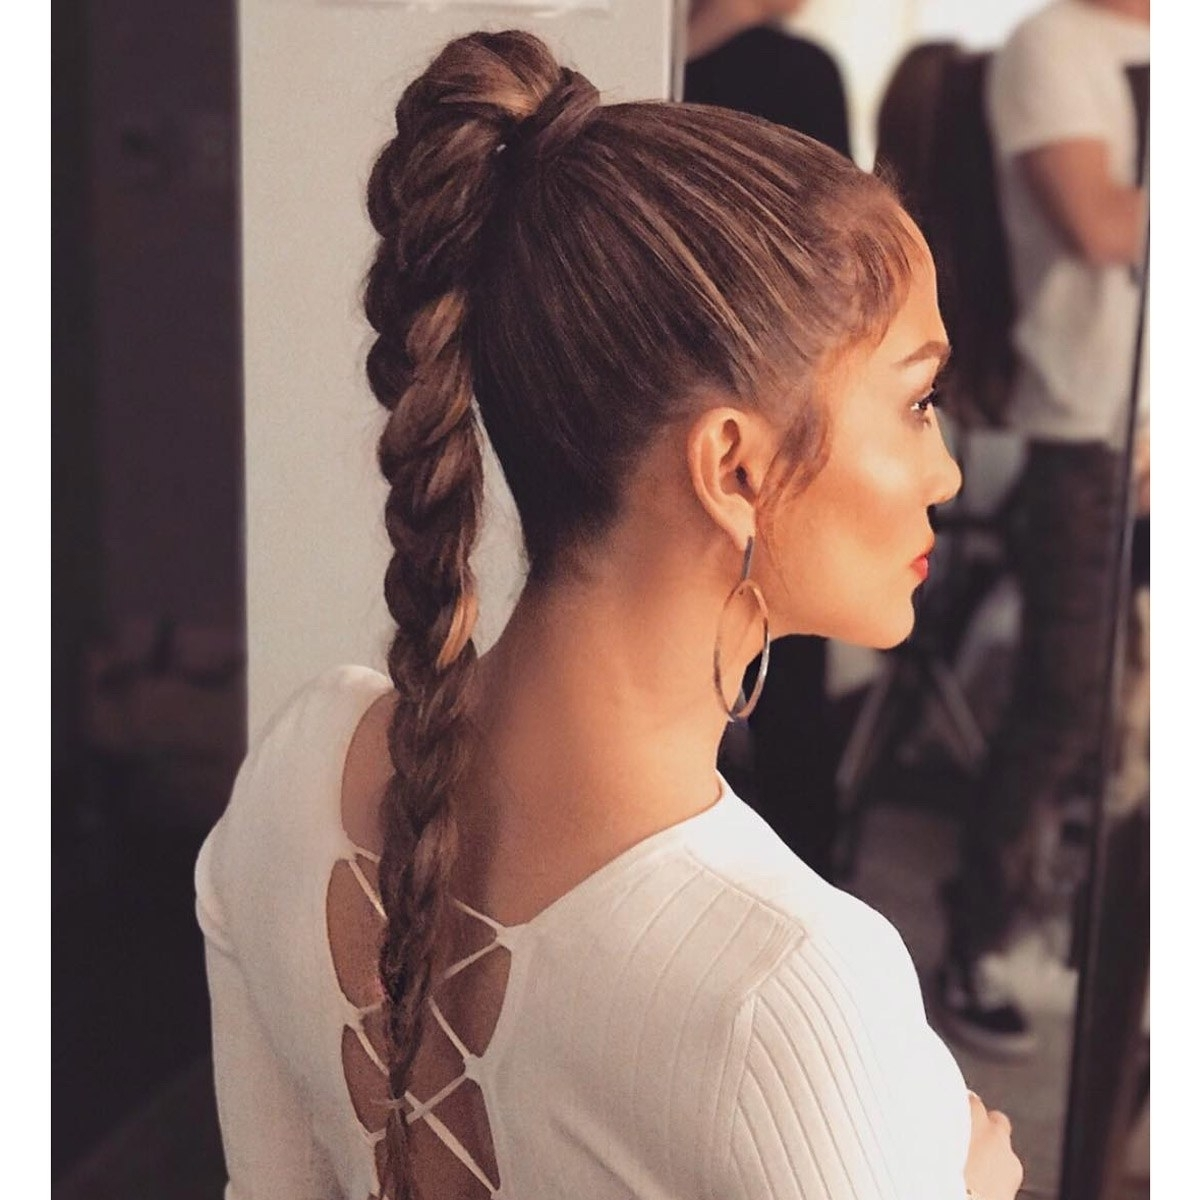 27 Ponytail Hairstyles For 2018: Best Ponytail Styles (View 2 of 20)